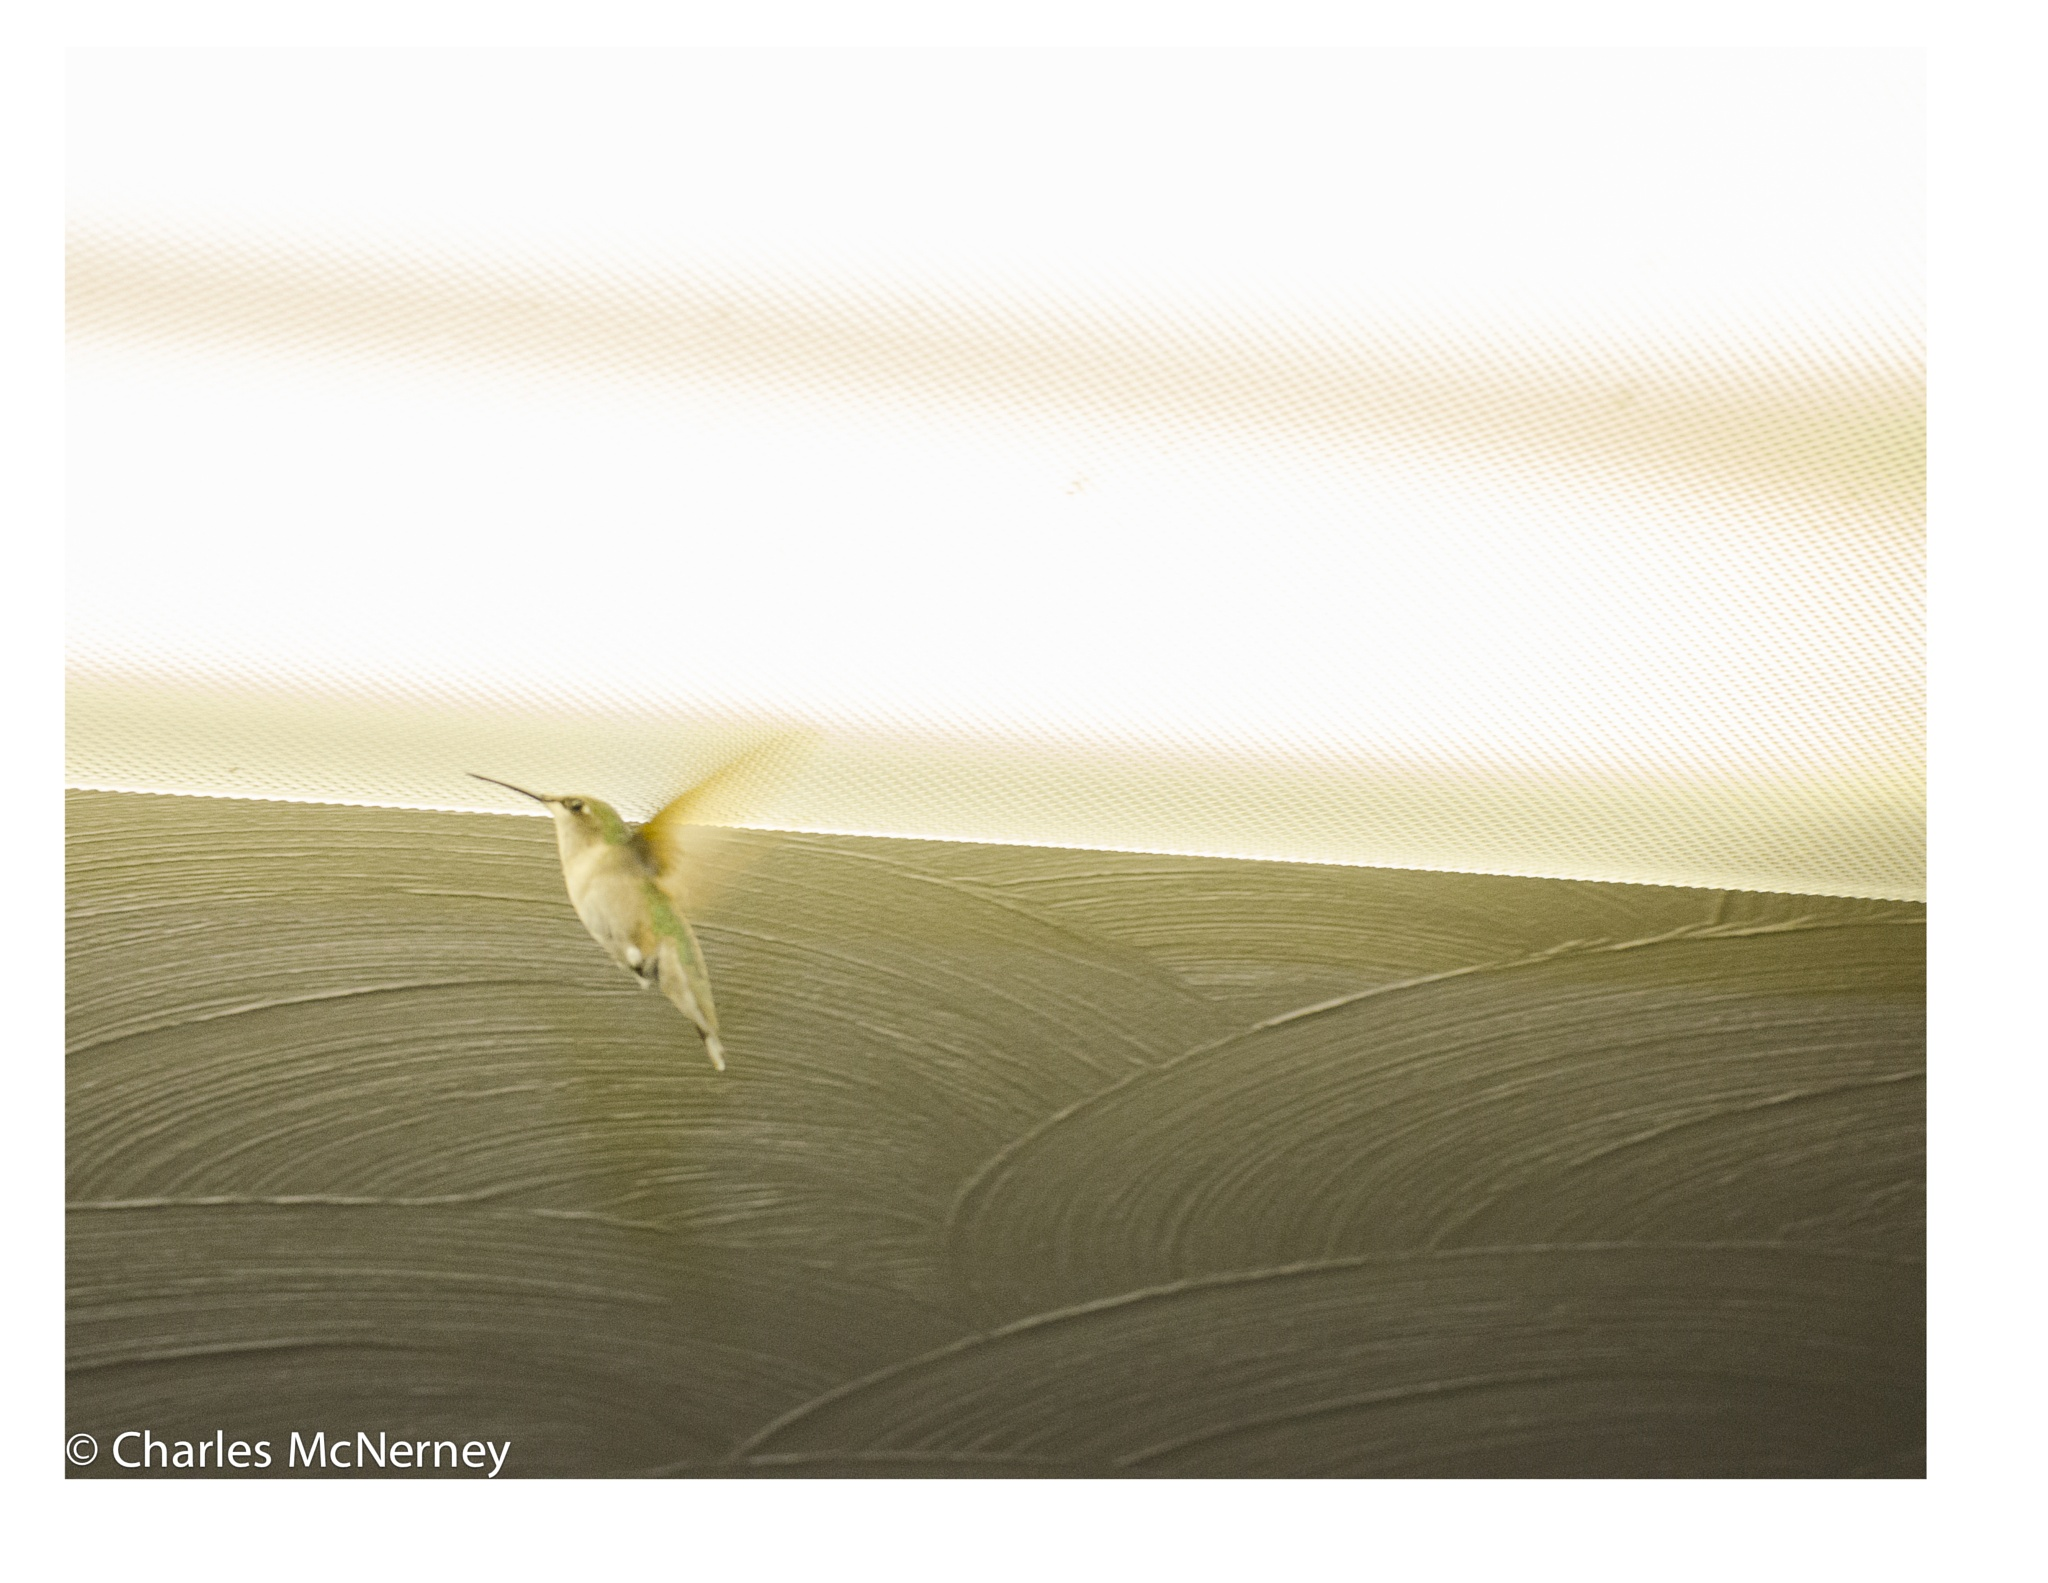 Hummingbird takes flight by Charles D McNerney